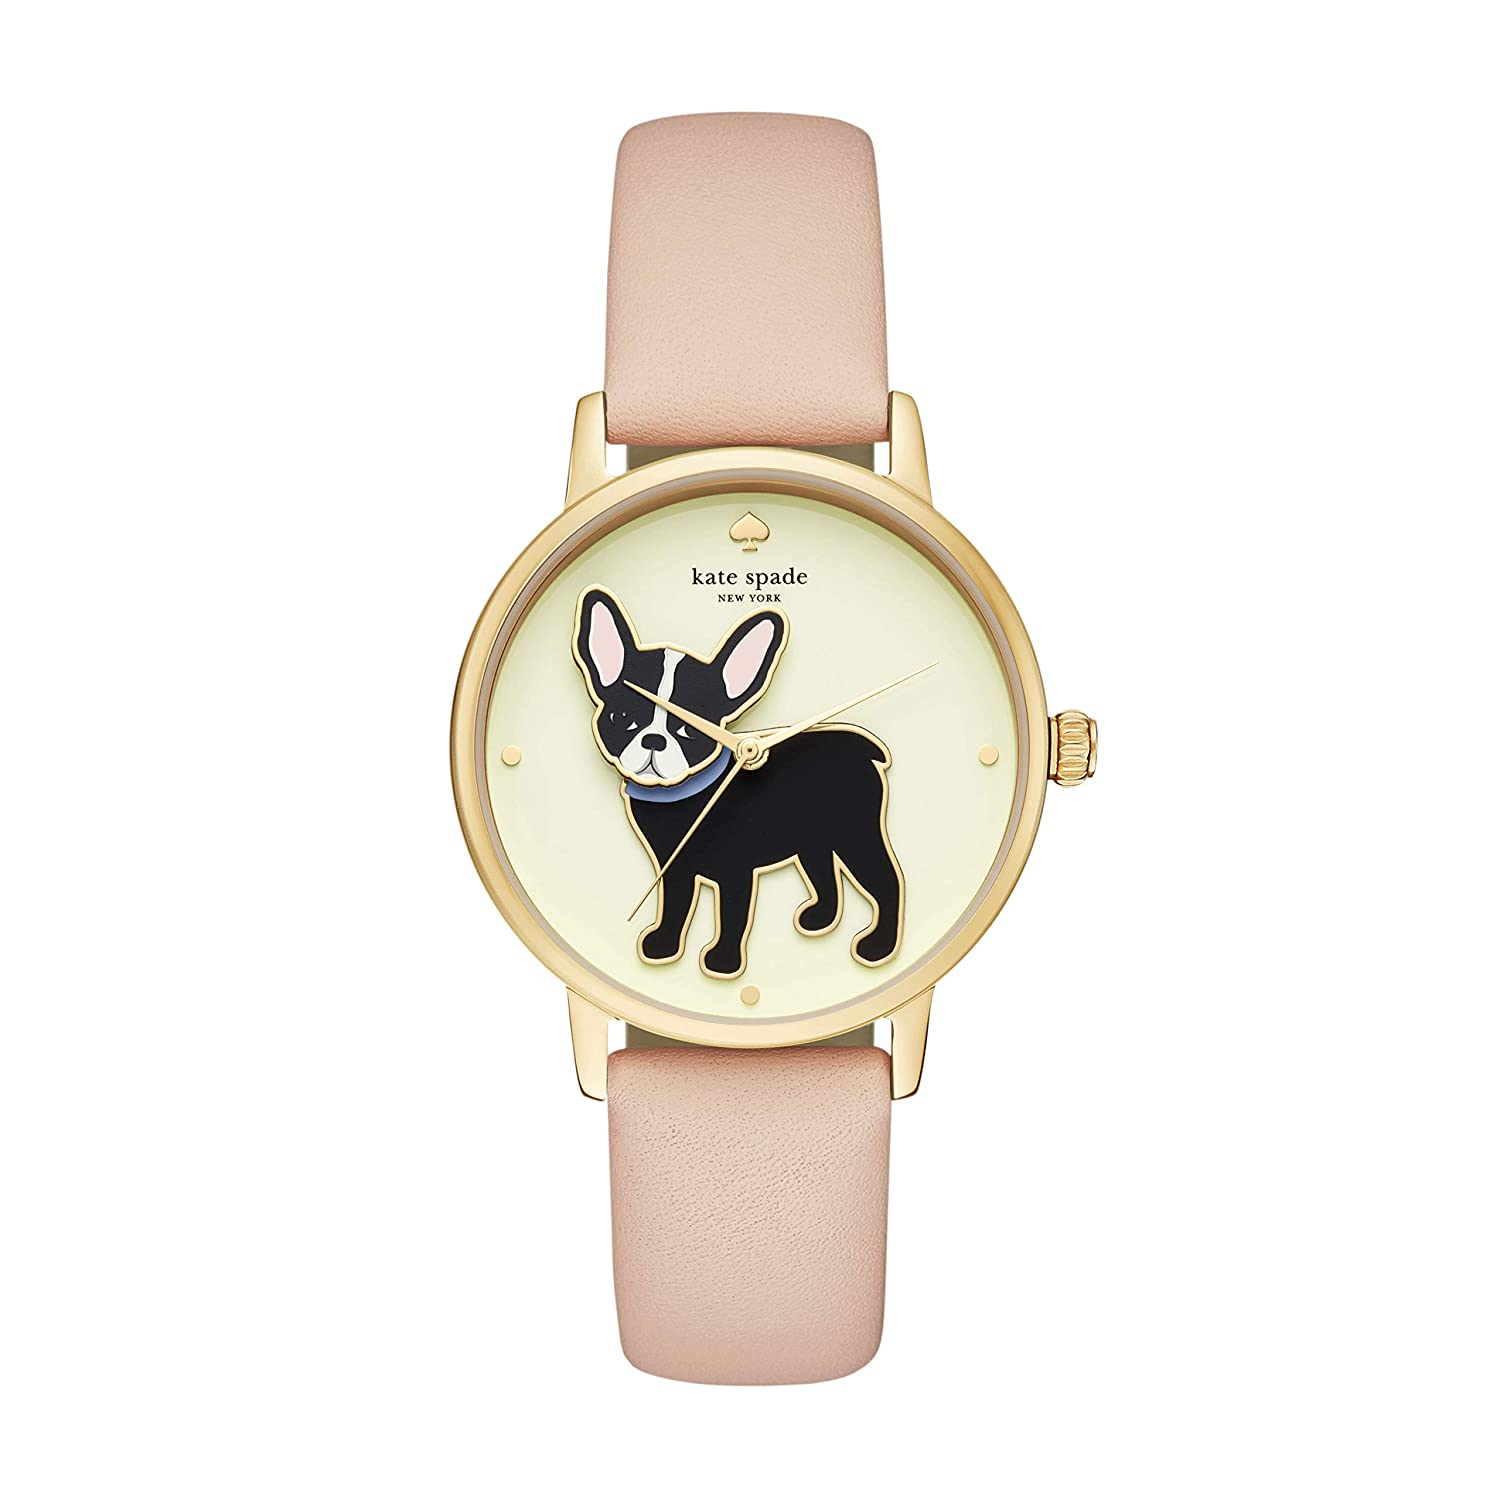 Kate Spade New York KSW1345 Reloj de Damas: Amazon.es: Relojes